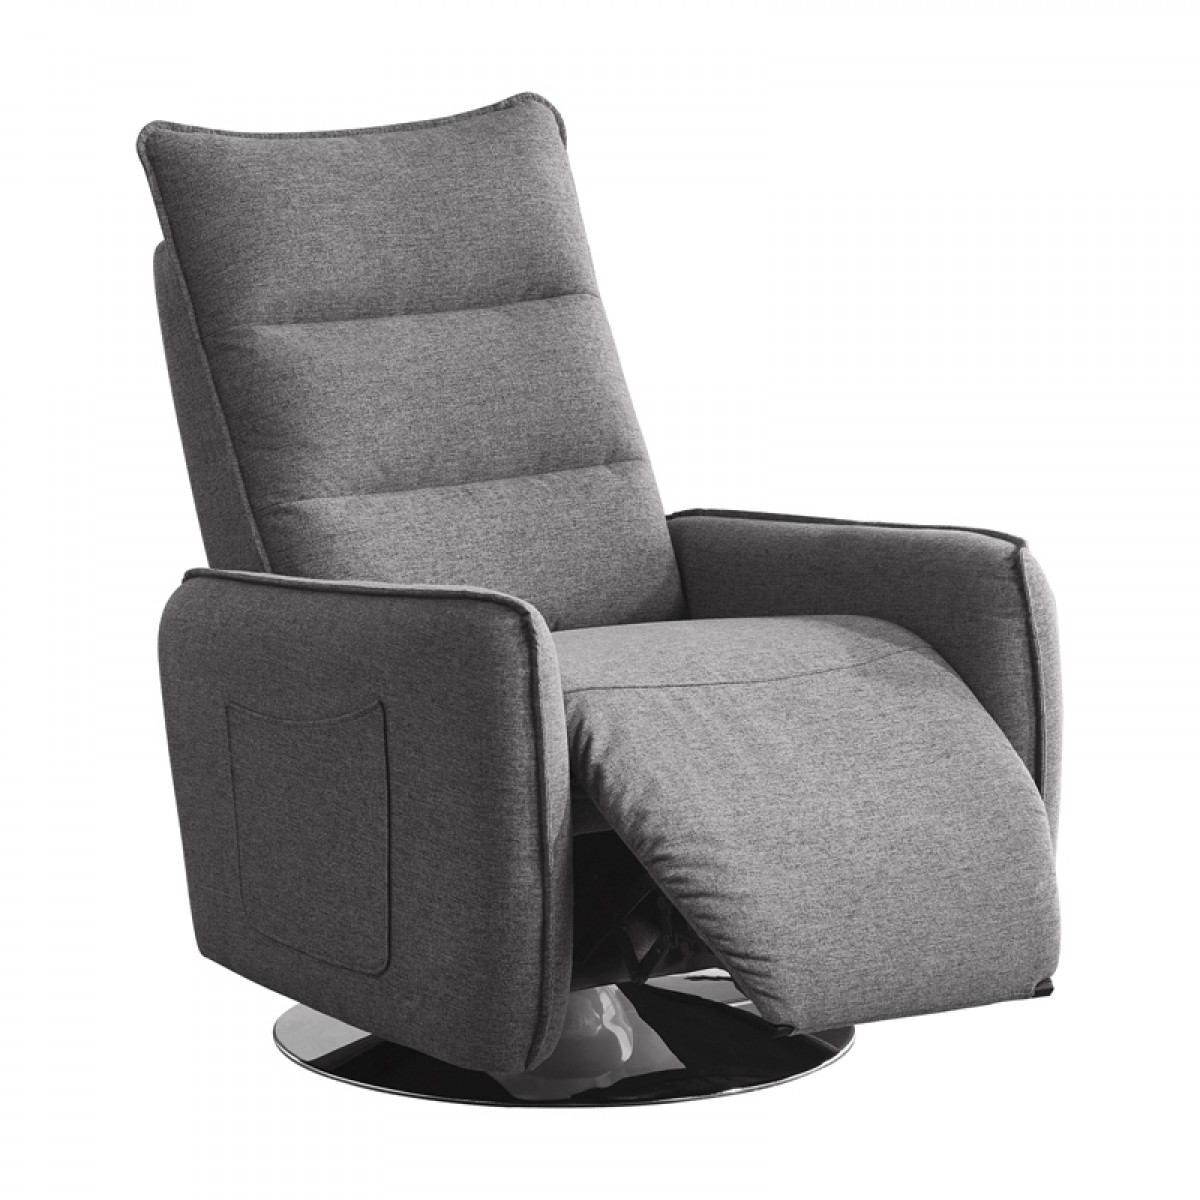 Gray Recliner Chair Divani Casa Fairfax Modern Grey Fabric Recliner Chair